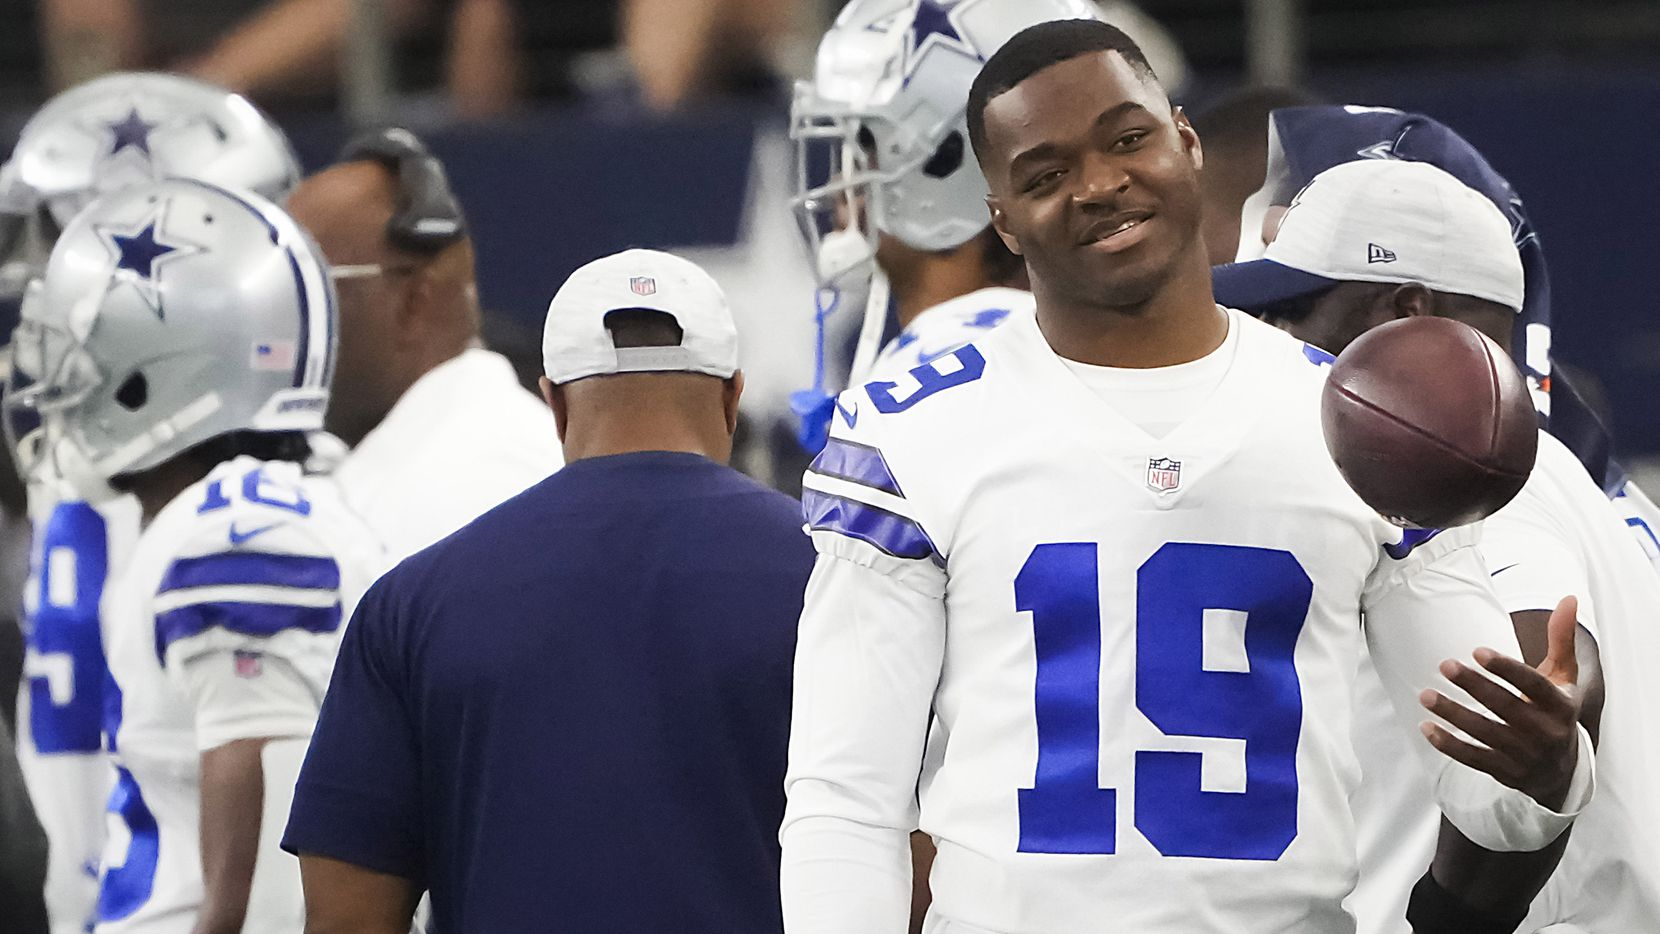 Dallas Cowboys wide receiver Amari Cooper tosses a ball on the sidelines during the first half of a preseason NFL football game against the Jacksonville Jaguars at AT&T Stadium on Sunday, Aug. 29, 2021, in Arlington.